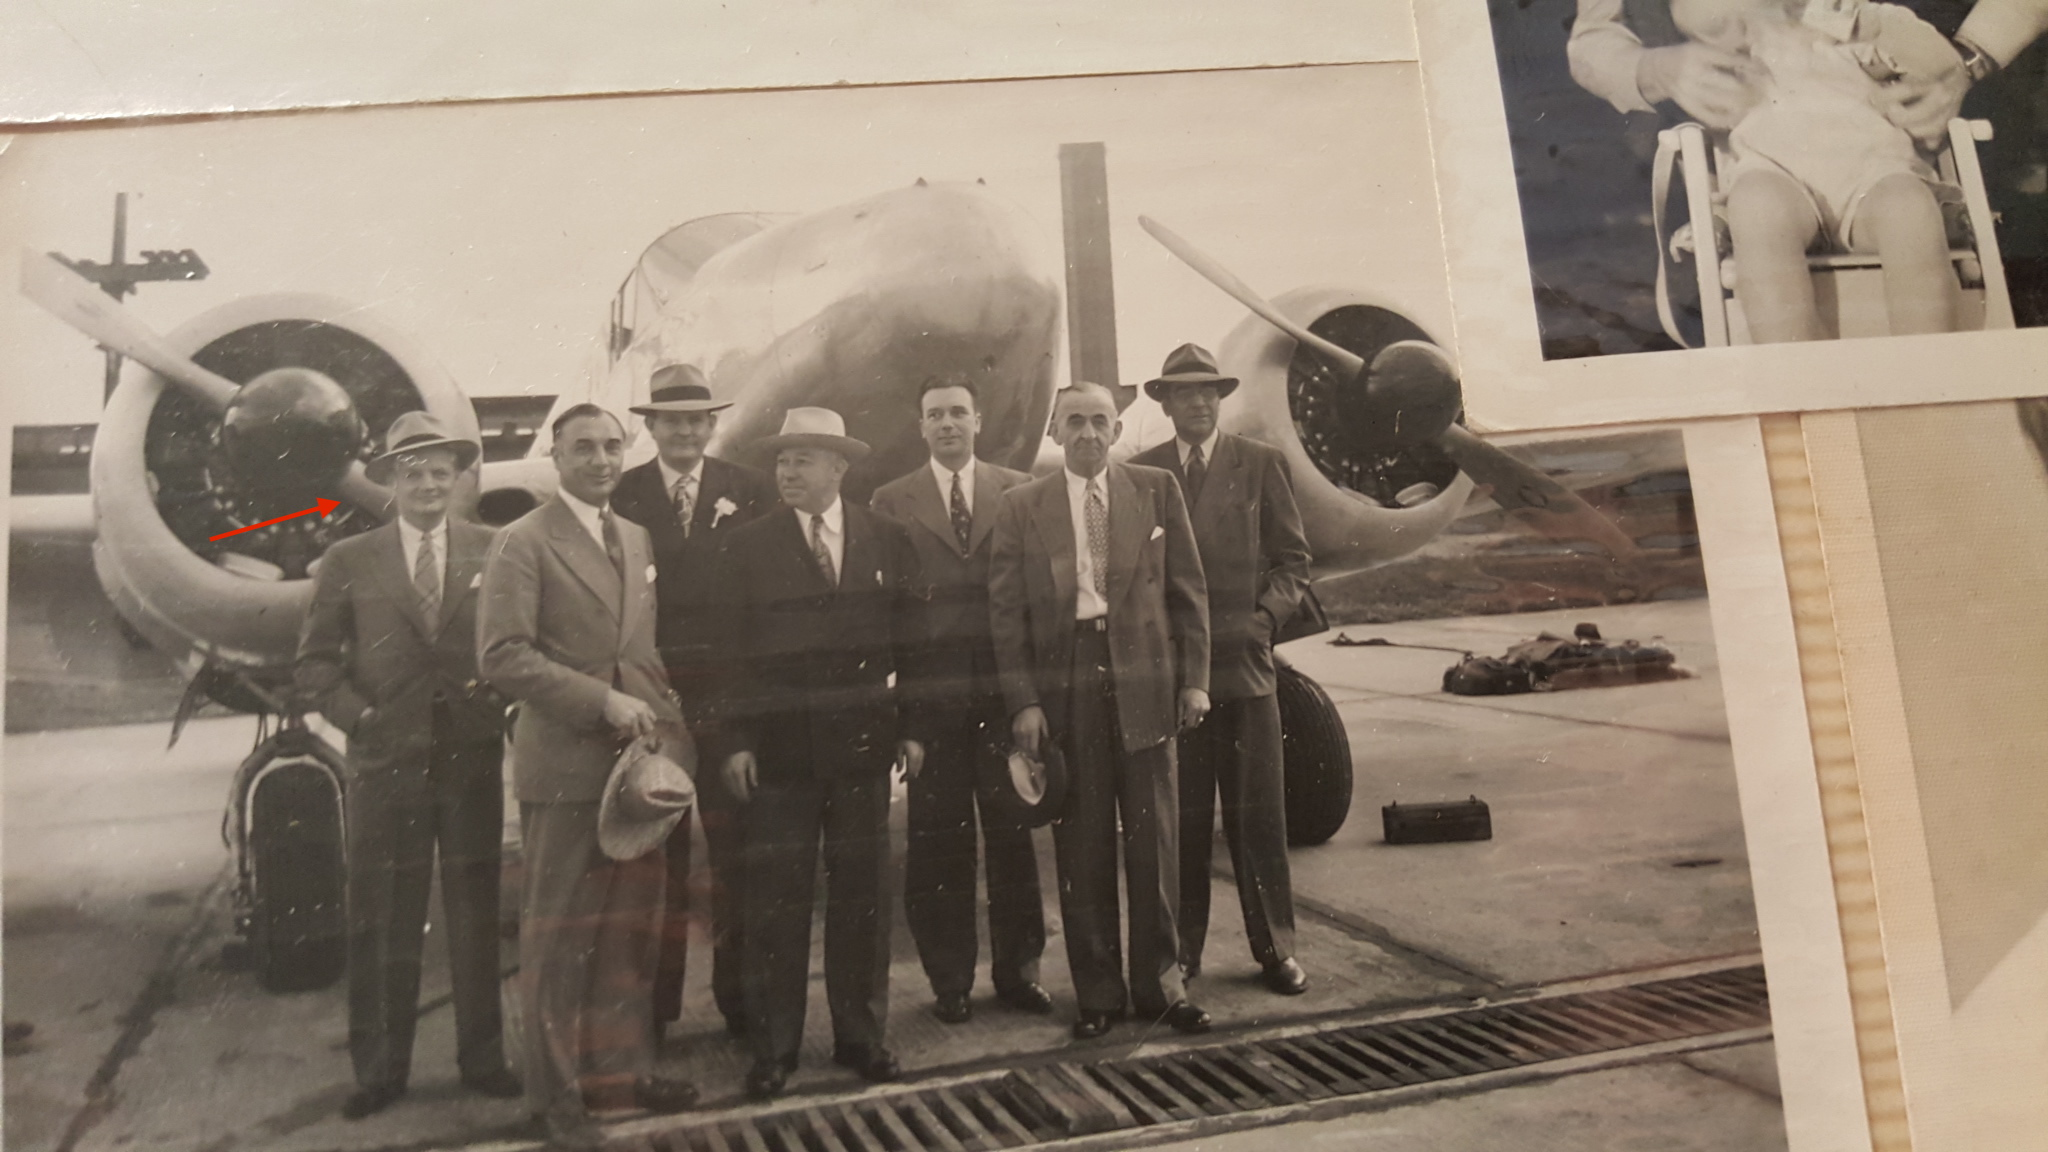 SA Fred McIntyre (arrow) and other FBI agents currently unidentified. McIntyre served from 1934 until 1955 and possibly was an instructor at the Quantico firearms facility which we have yet to verify. (courtesy his niece, Susan Gilchrist) Circa 1930s